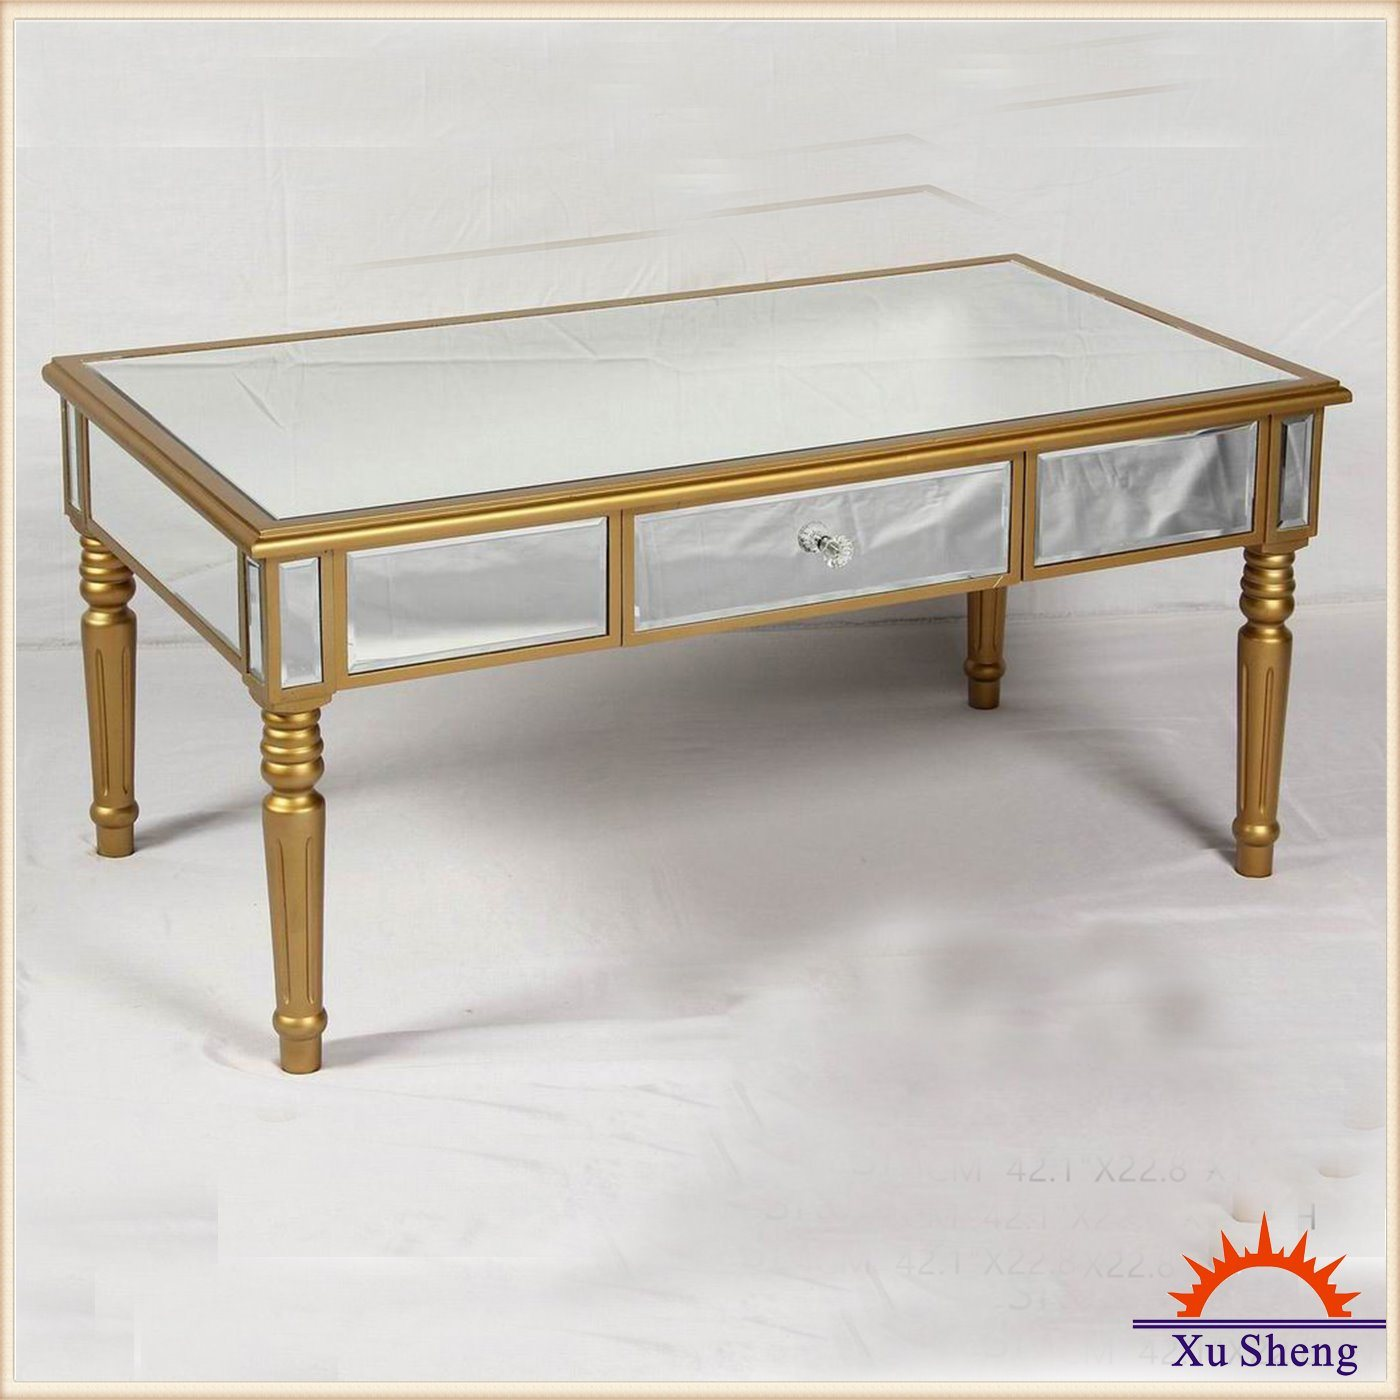 Wooden Mirrored Console Table - Champagne Gold Home Furniture